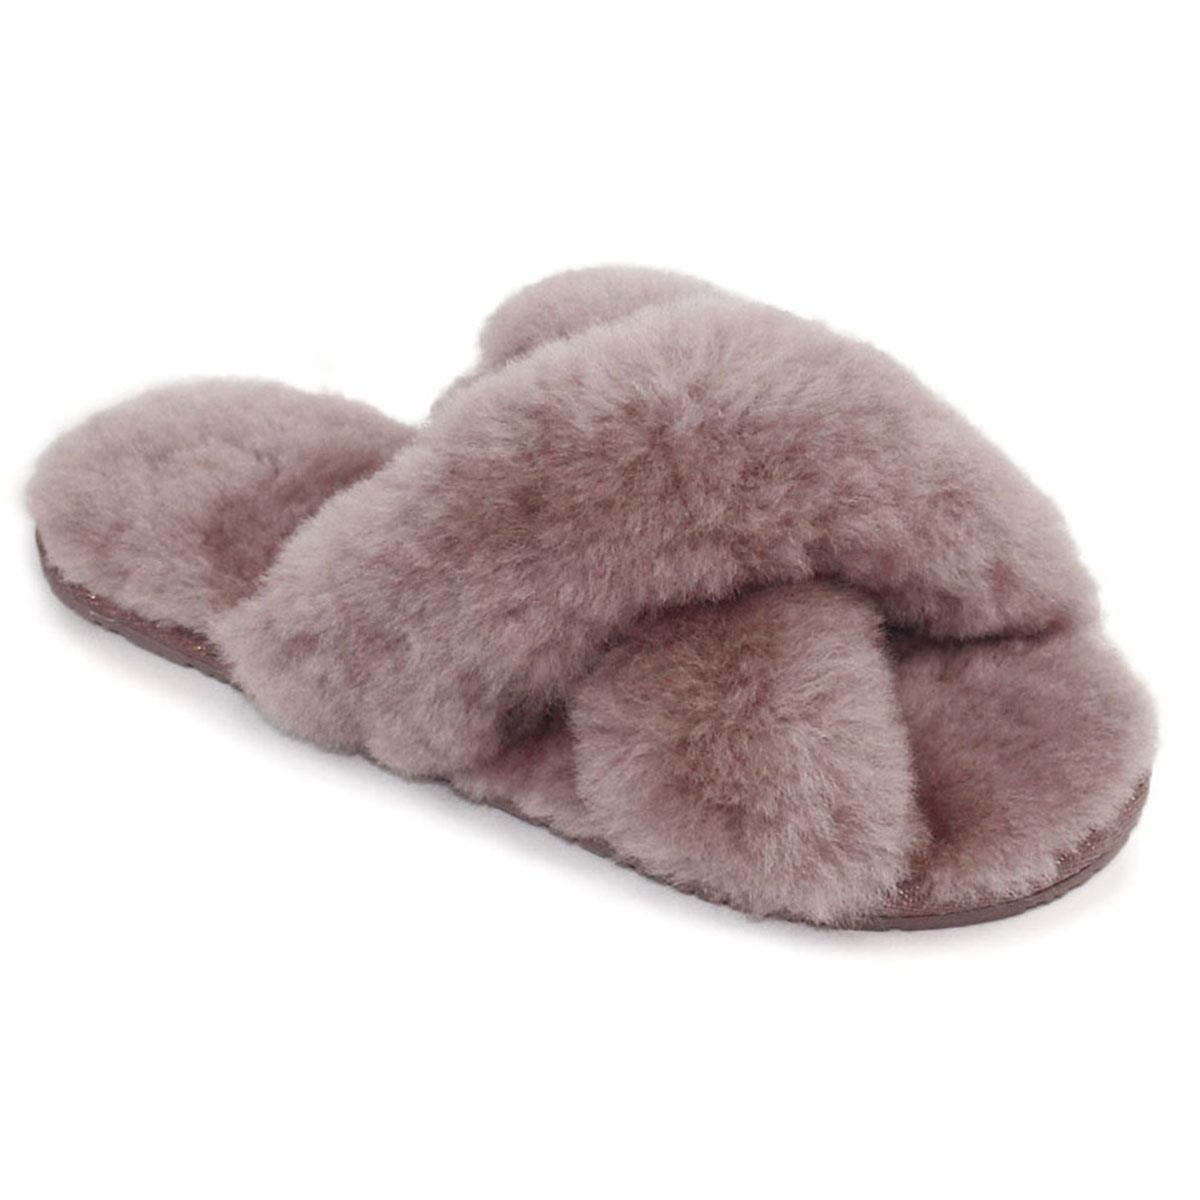 d628672c2478d Ladies Daisy Sheepskin Sliders | Just Sheepskin Slippers and Boots